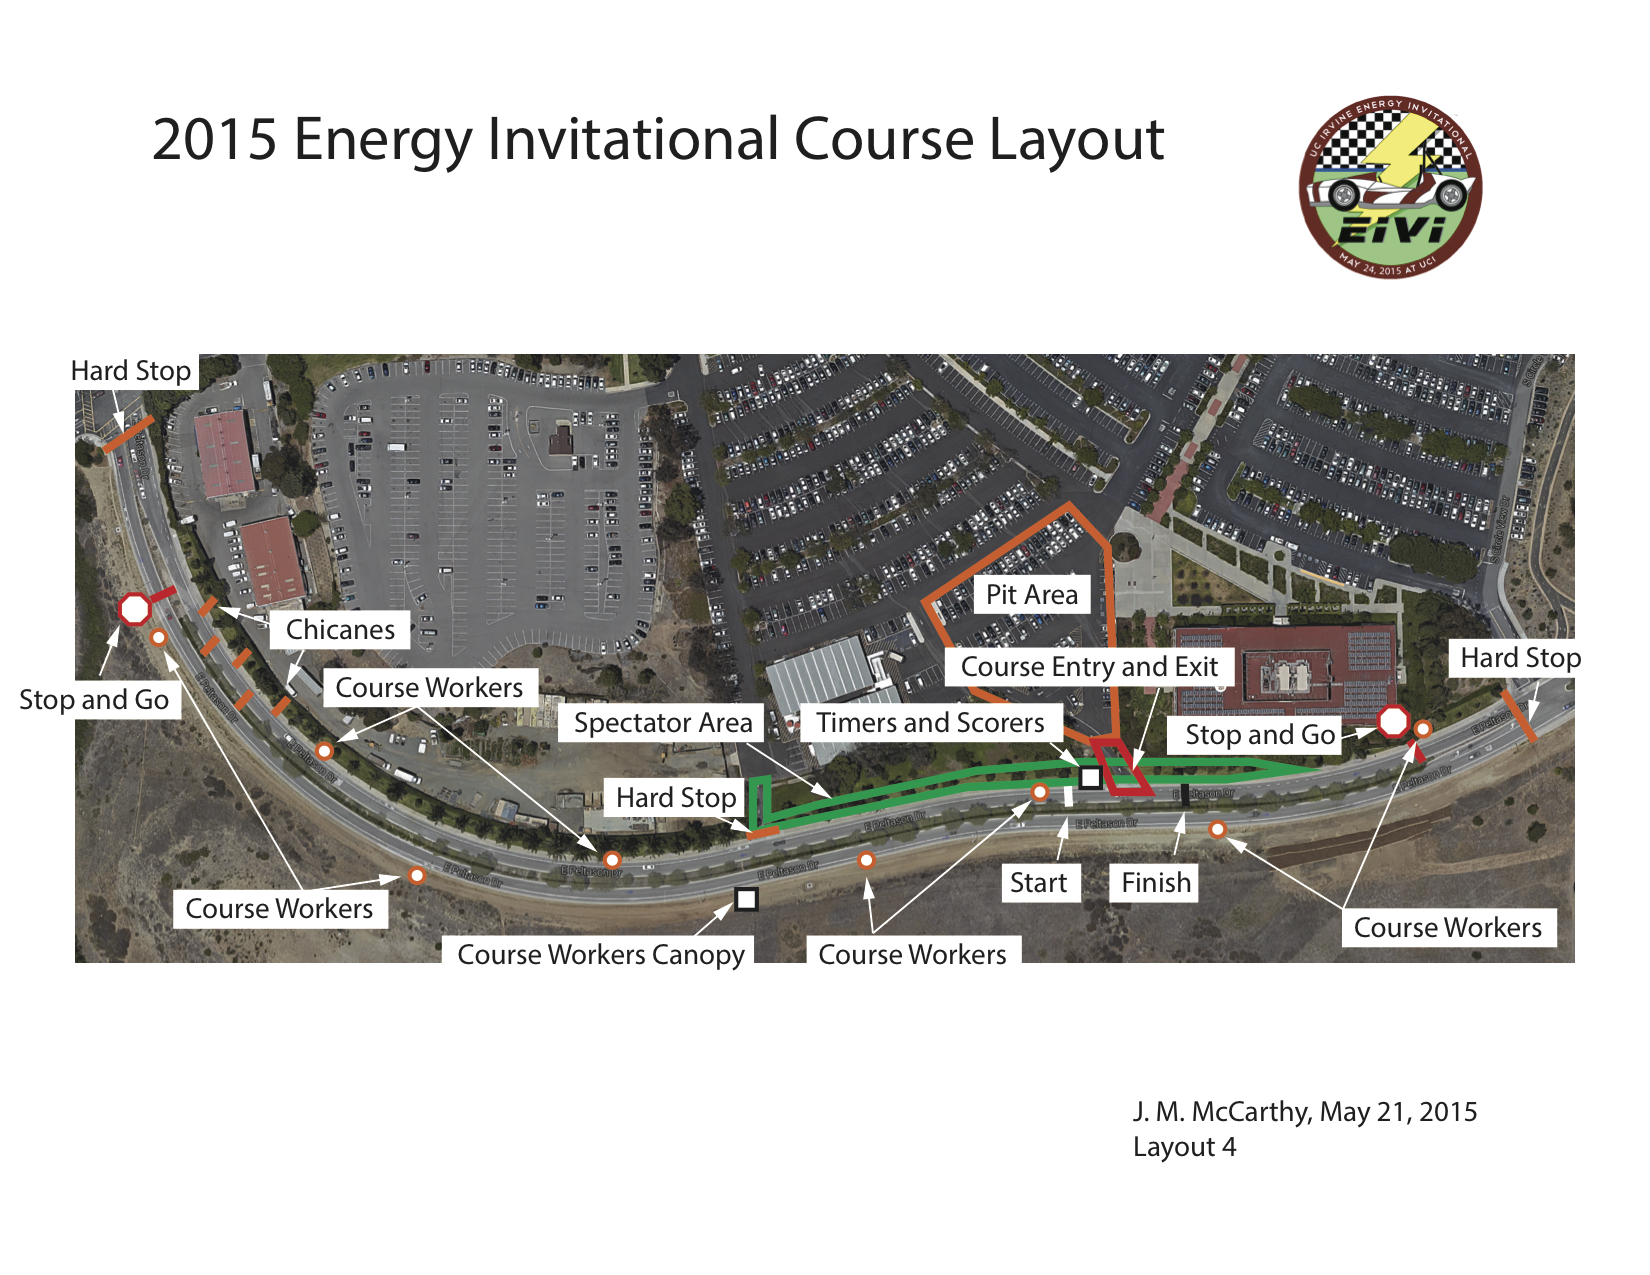 2015 Energy Invitational Layout 4-Course